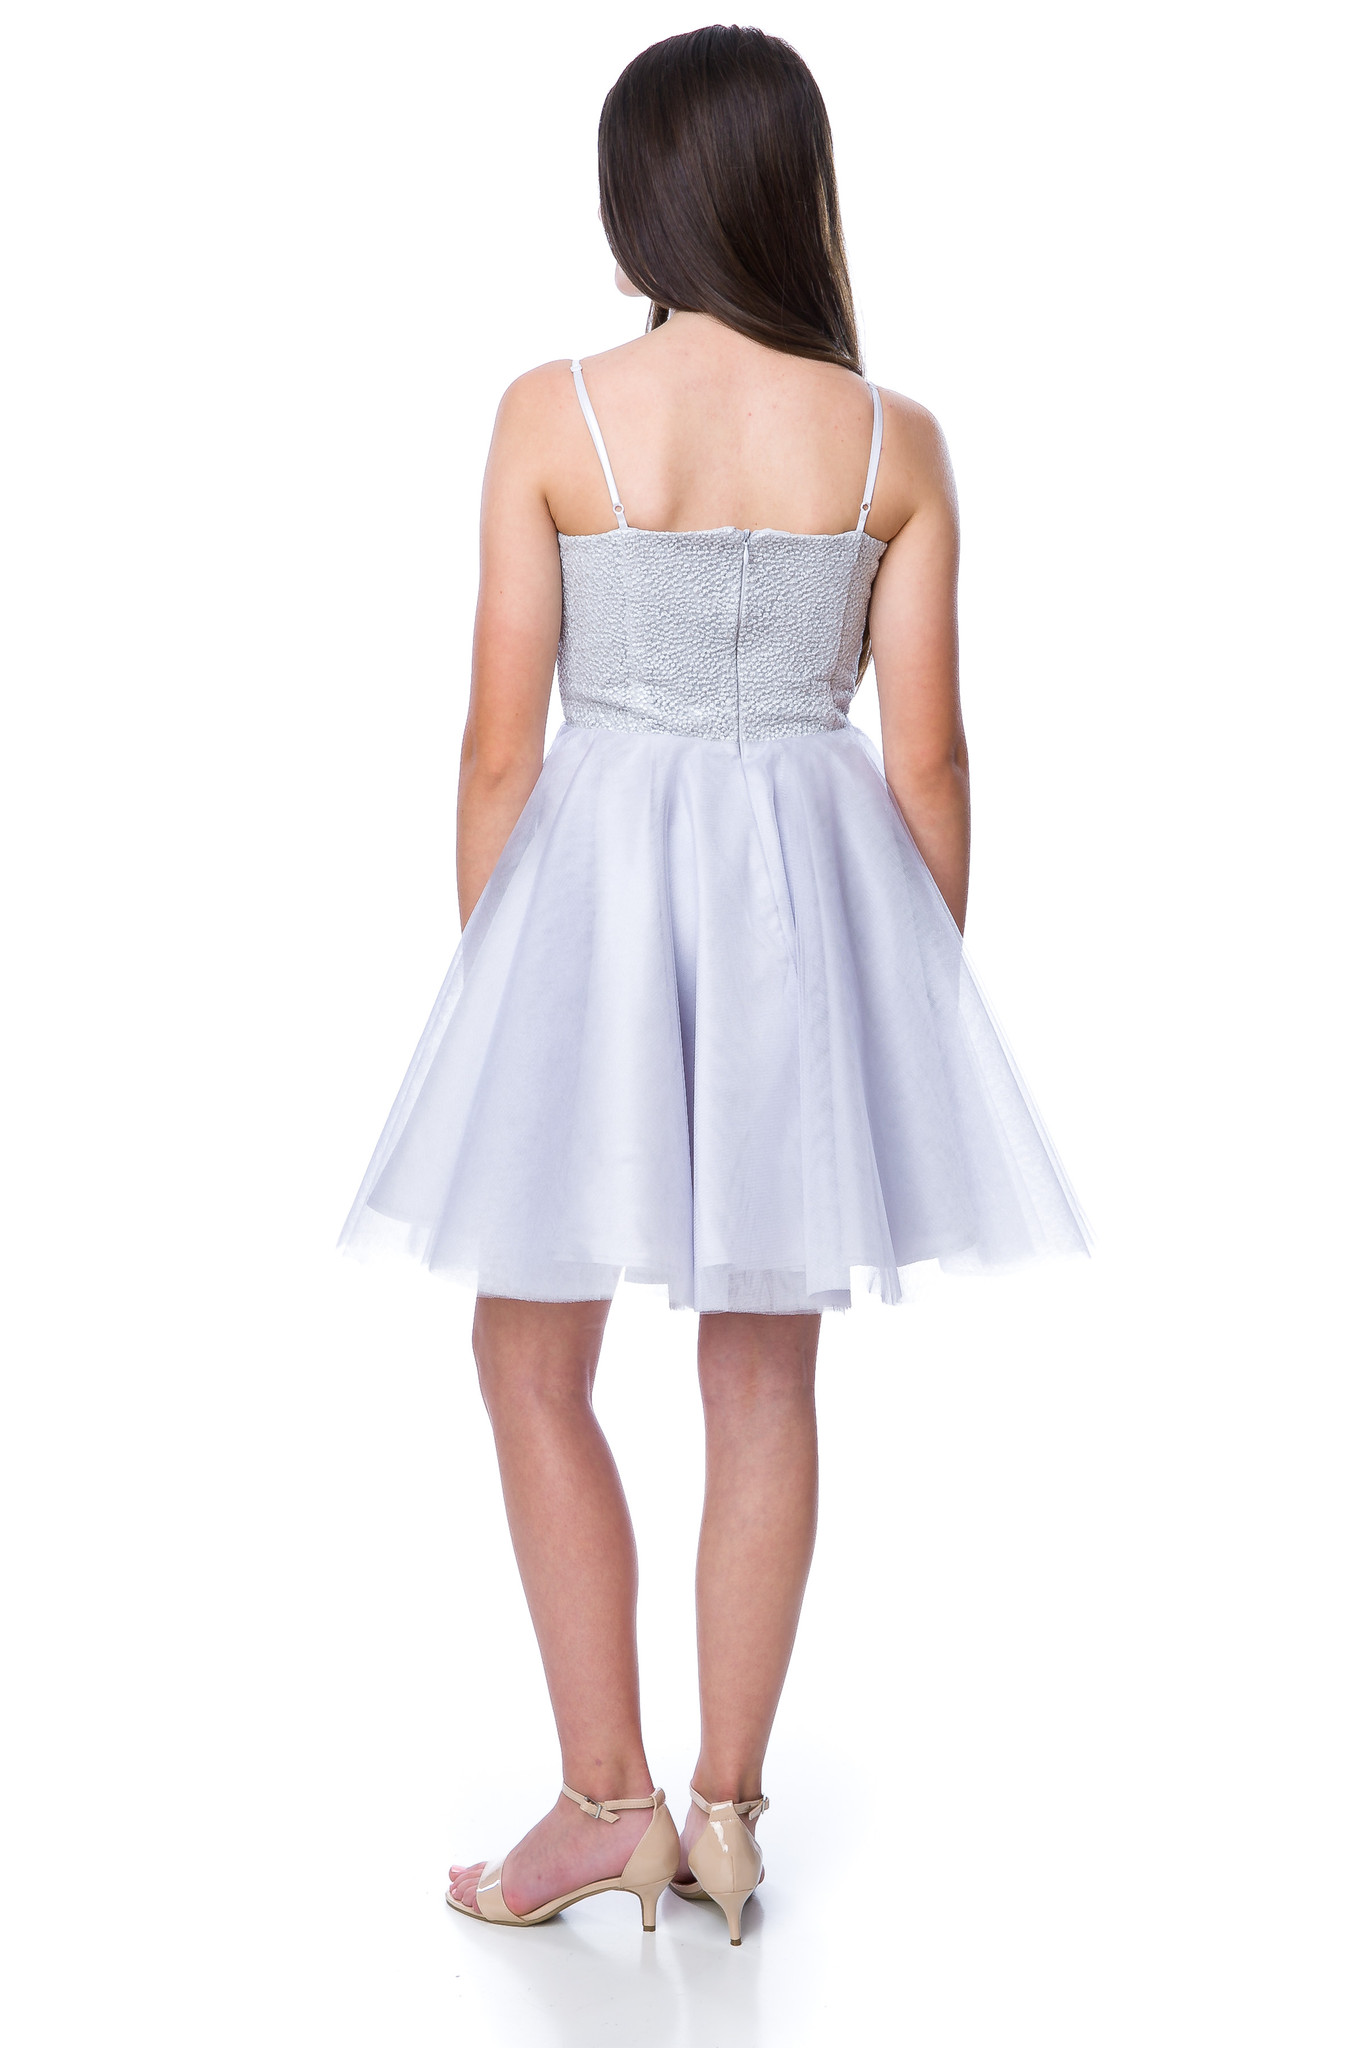 Girls Silver Sequin Tulle Party Dress in Longer Length.